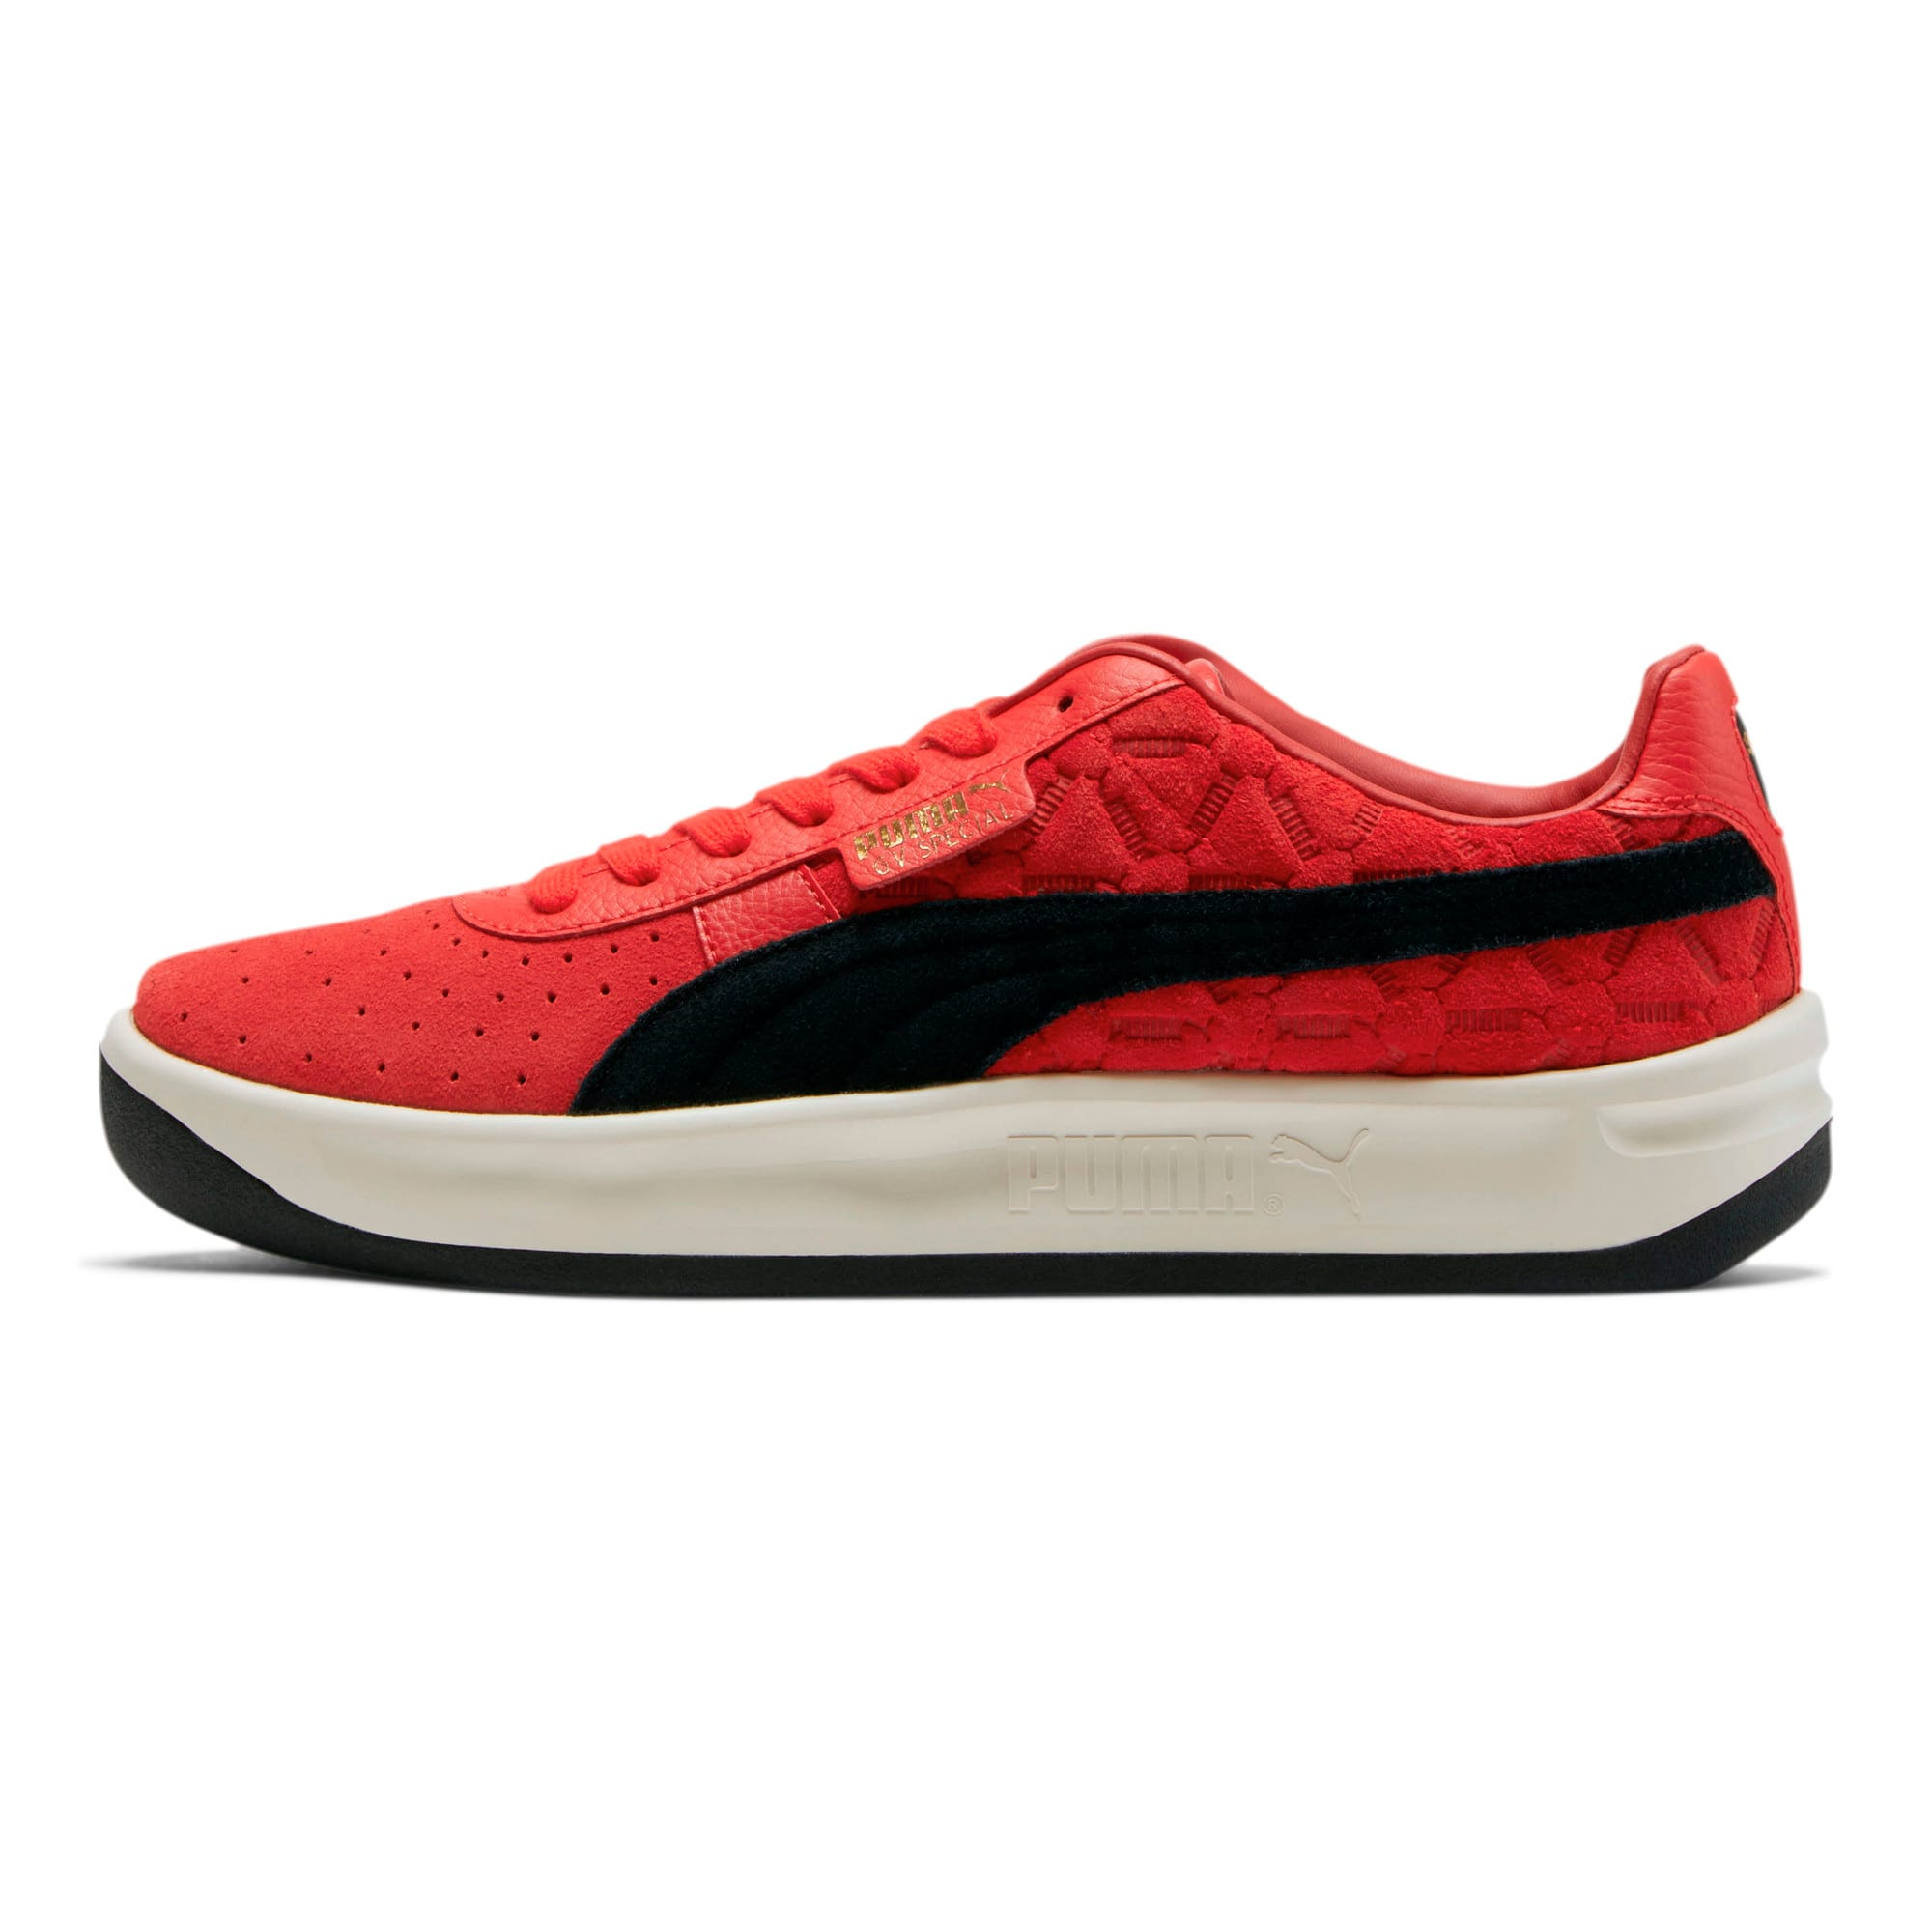 super popular fe19c 77b1b GV Special Lux Sneakers